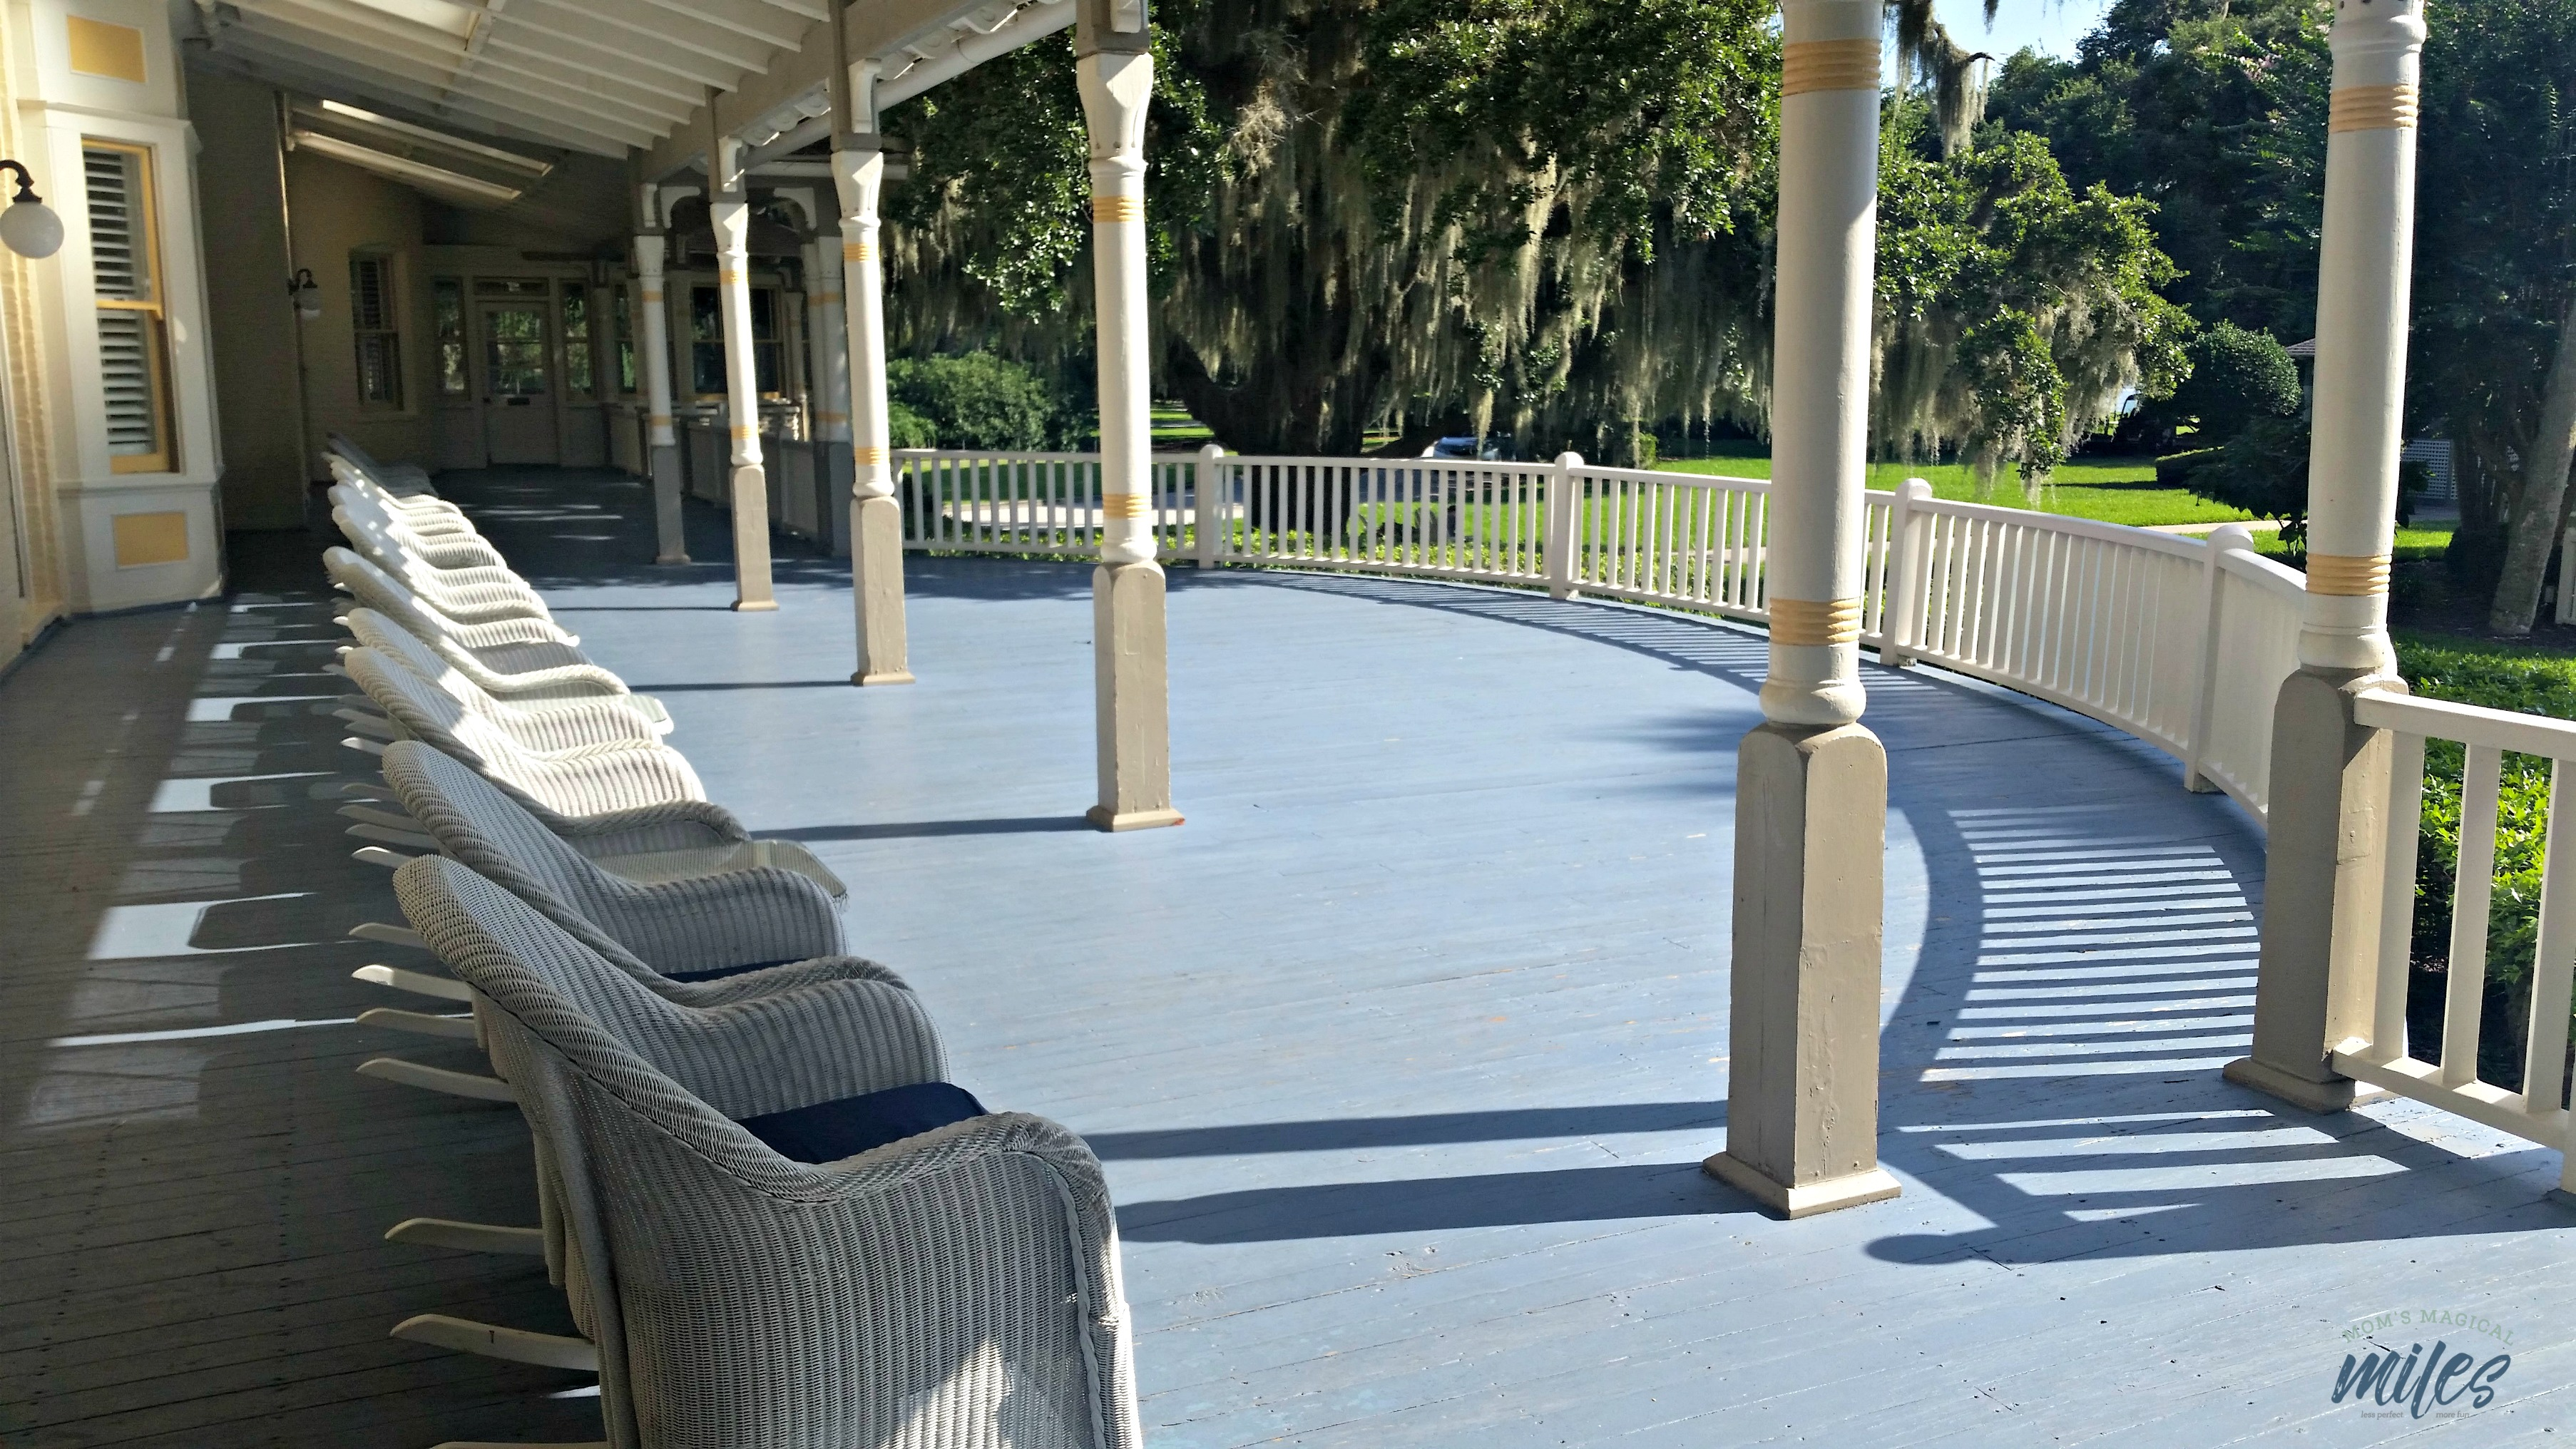 The front porch at the jekyll island club is the perfect place to relax and appreciate